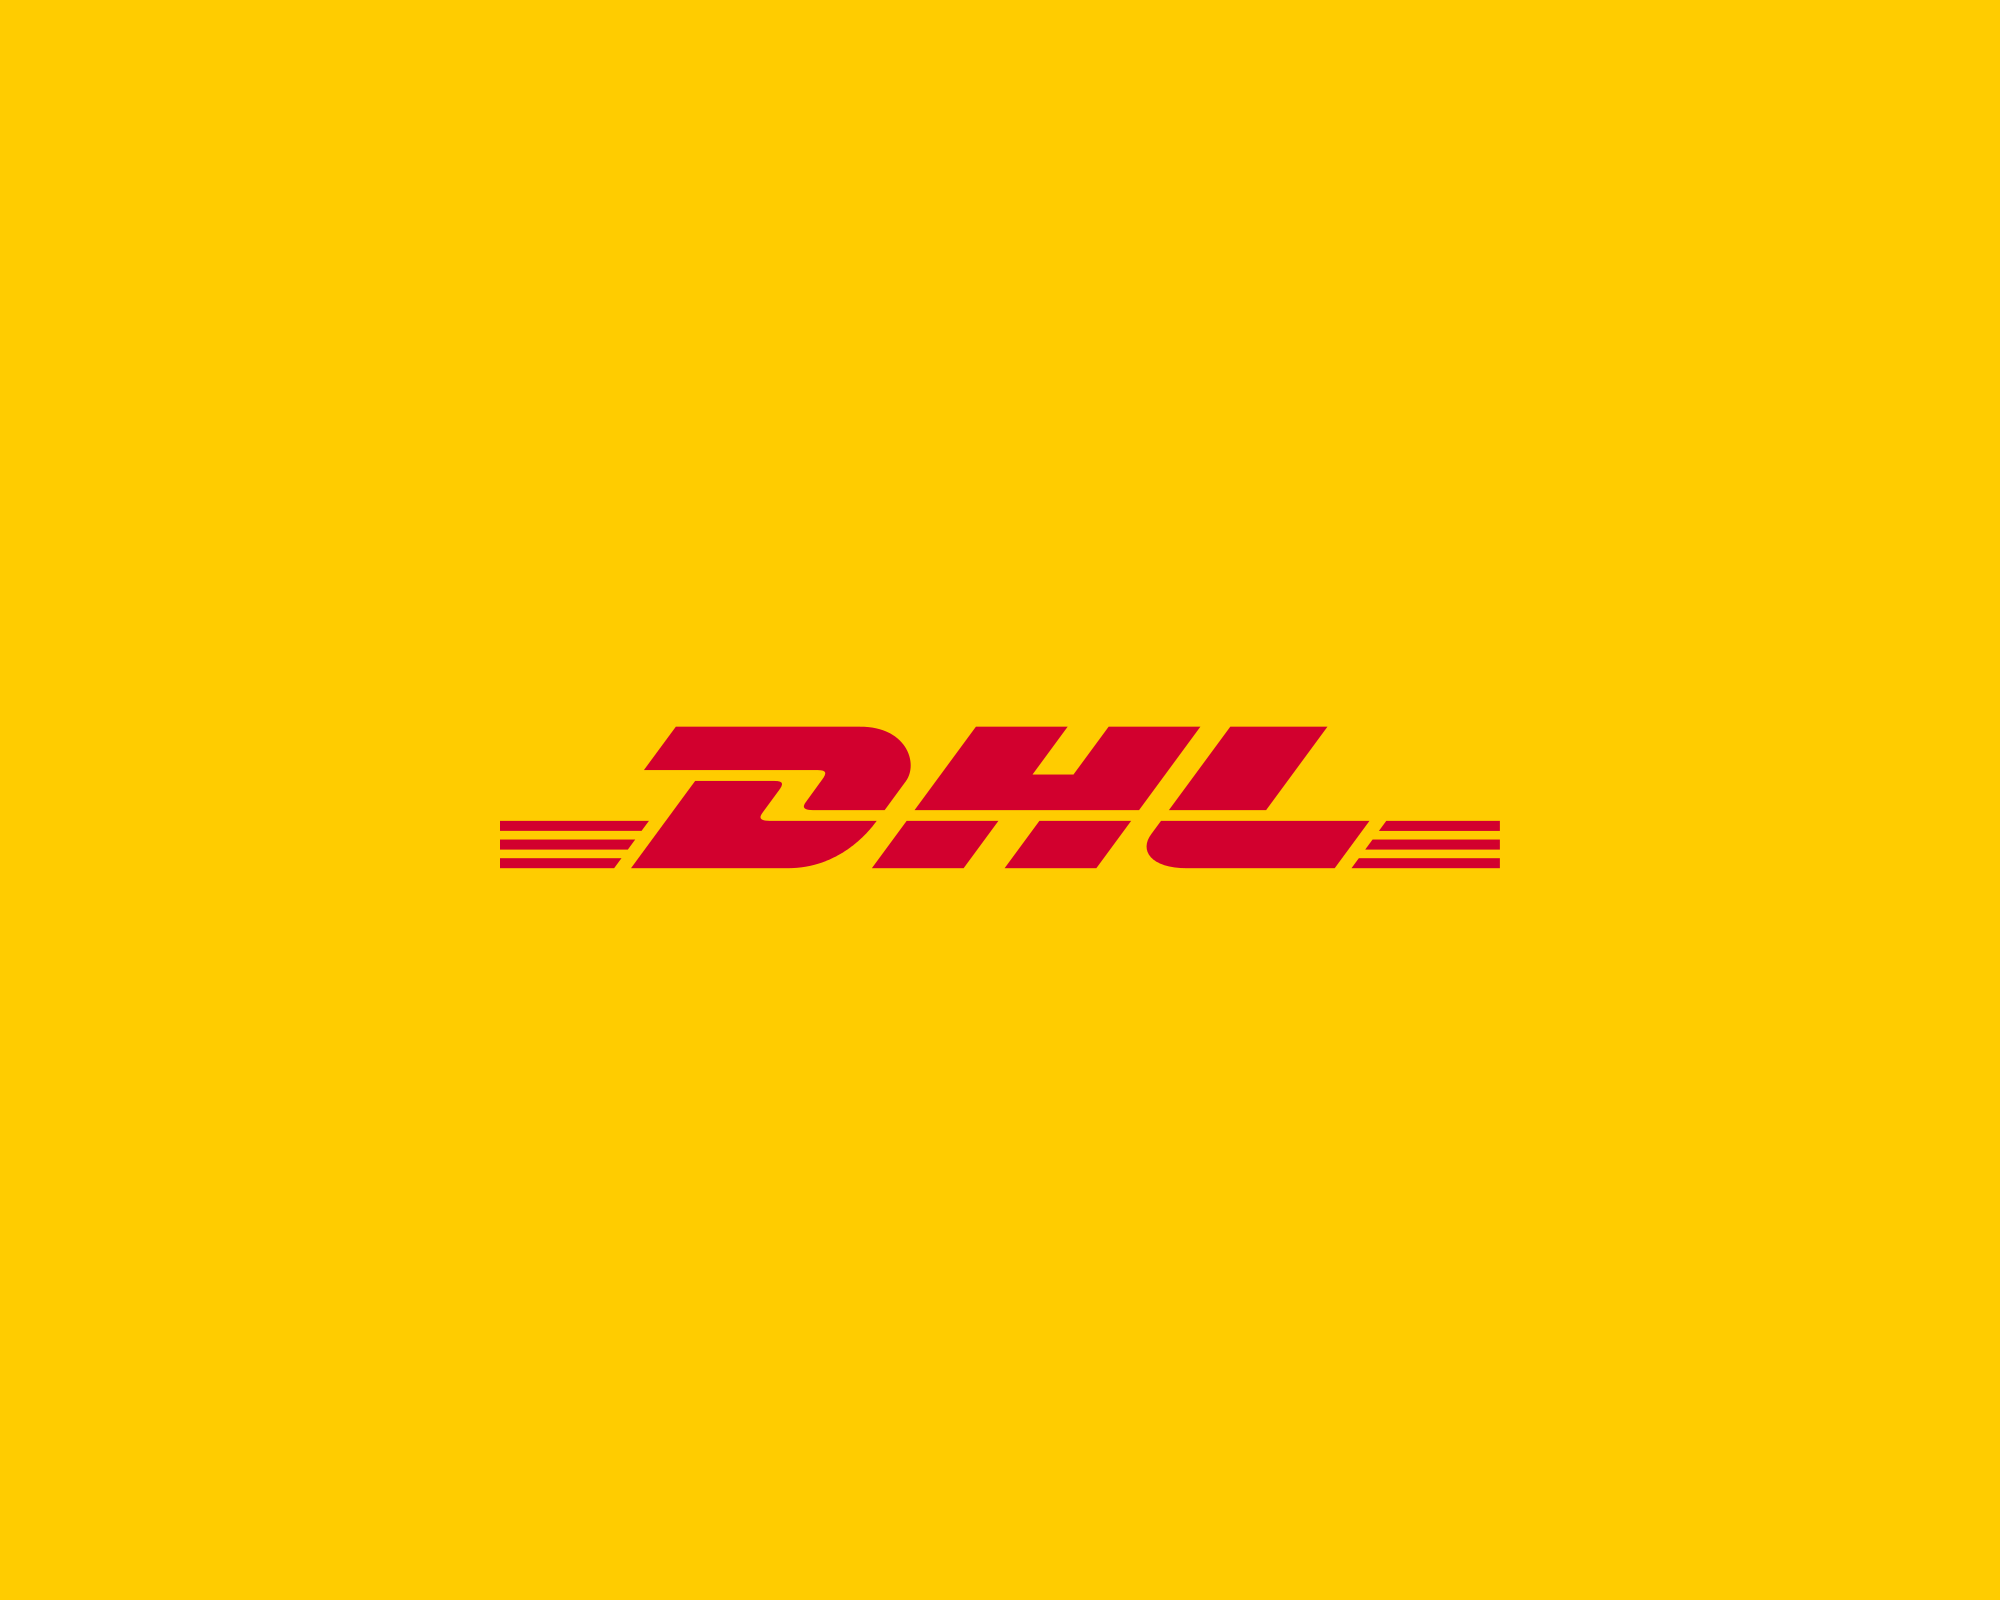 Shipping Upgrade UK RM ECO To DHL EXPRESS DPRINTUK - Commercial invoice template dhl online store credit cards guaranteed approval